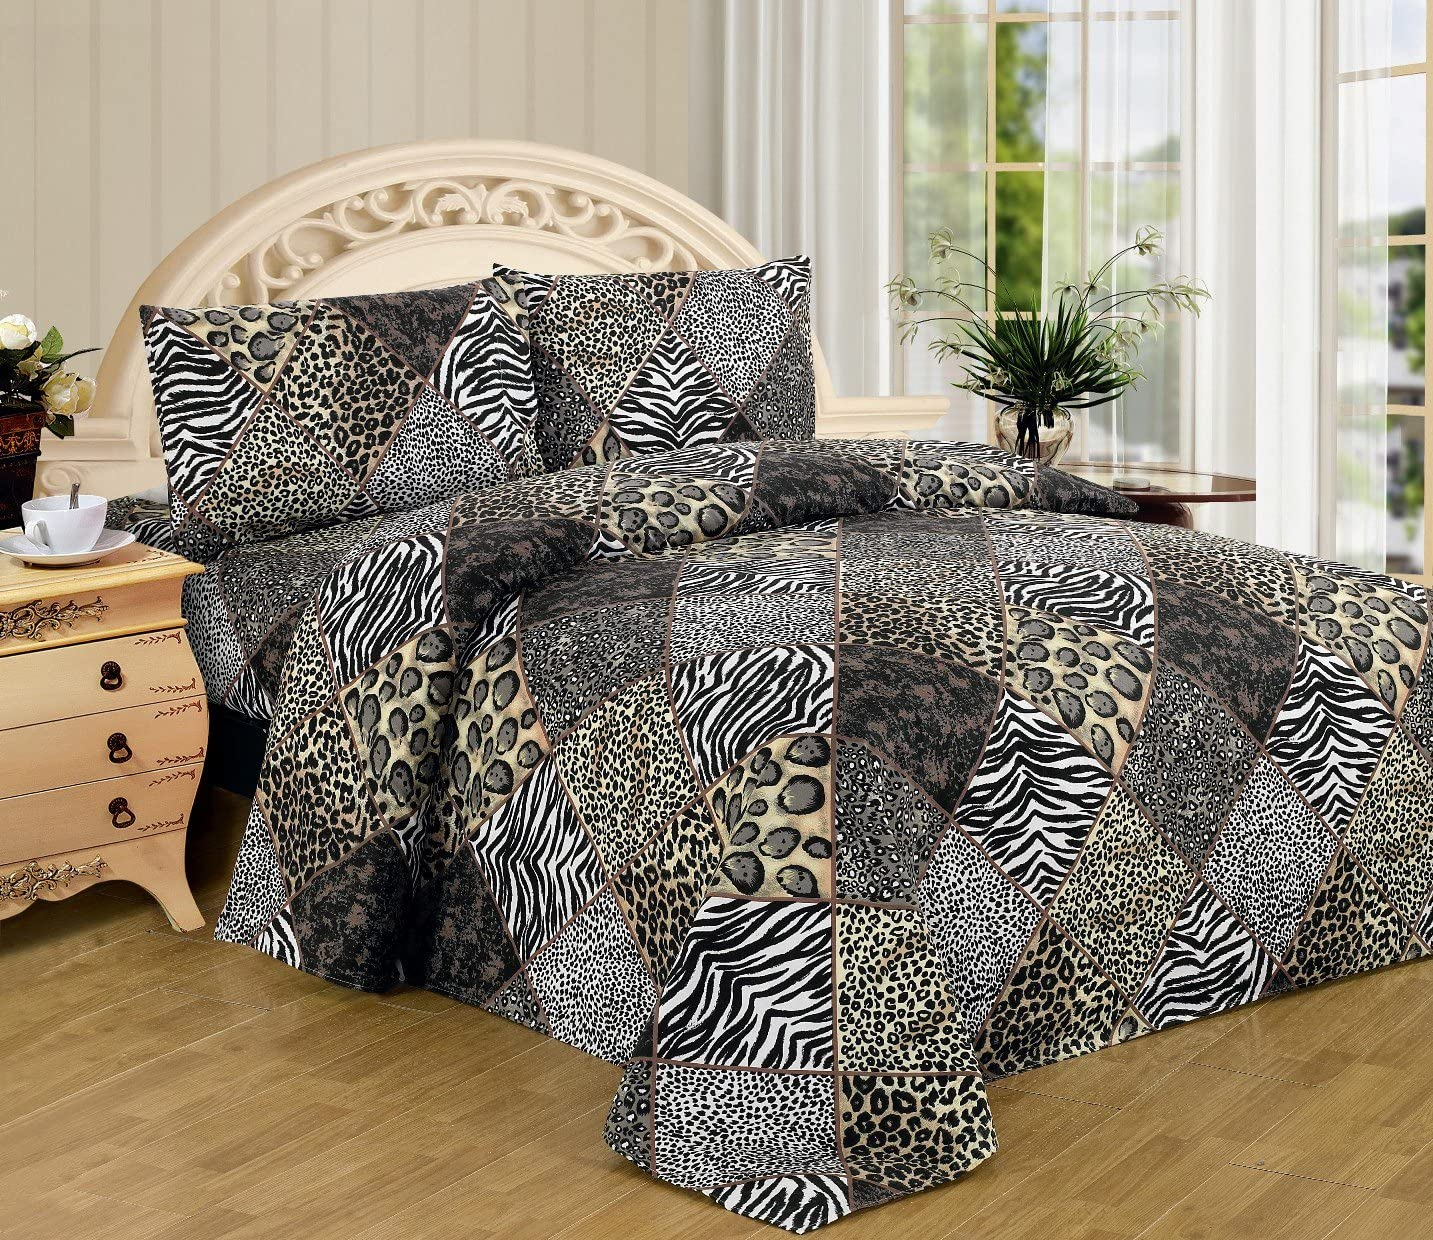 Bed Sheets Bedding Sheet Set Zebra Animal Print Queen Size Soft Flat Case 4 pcs